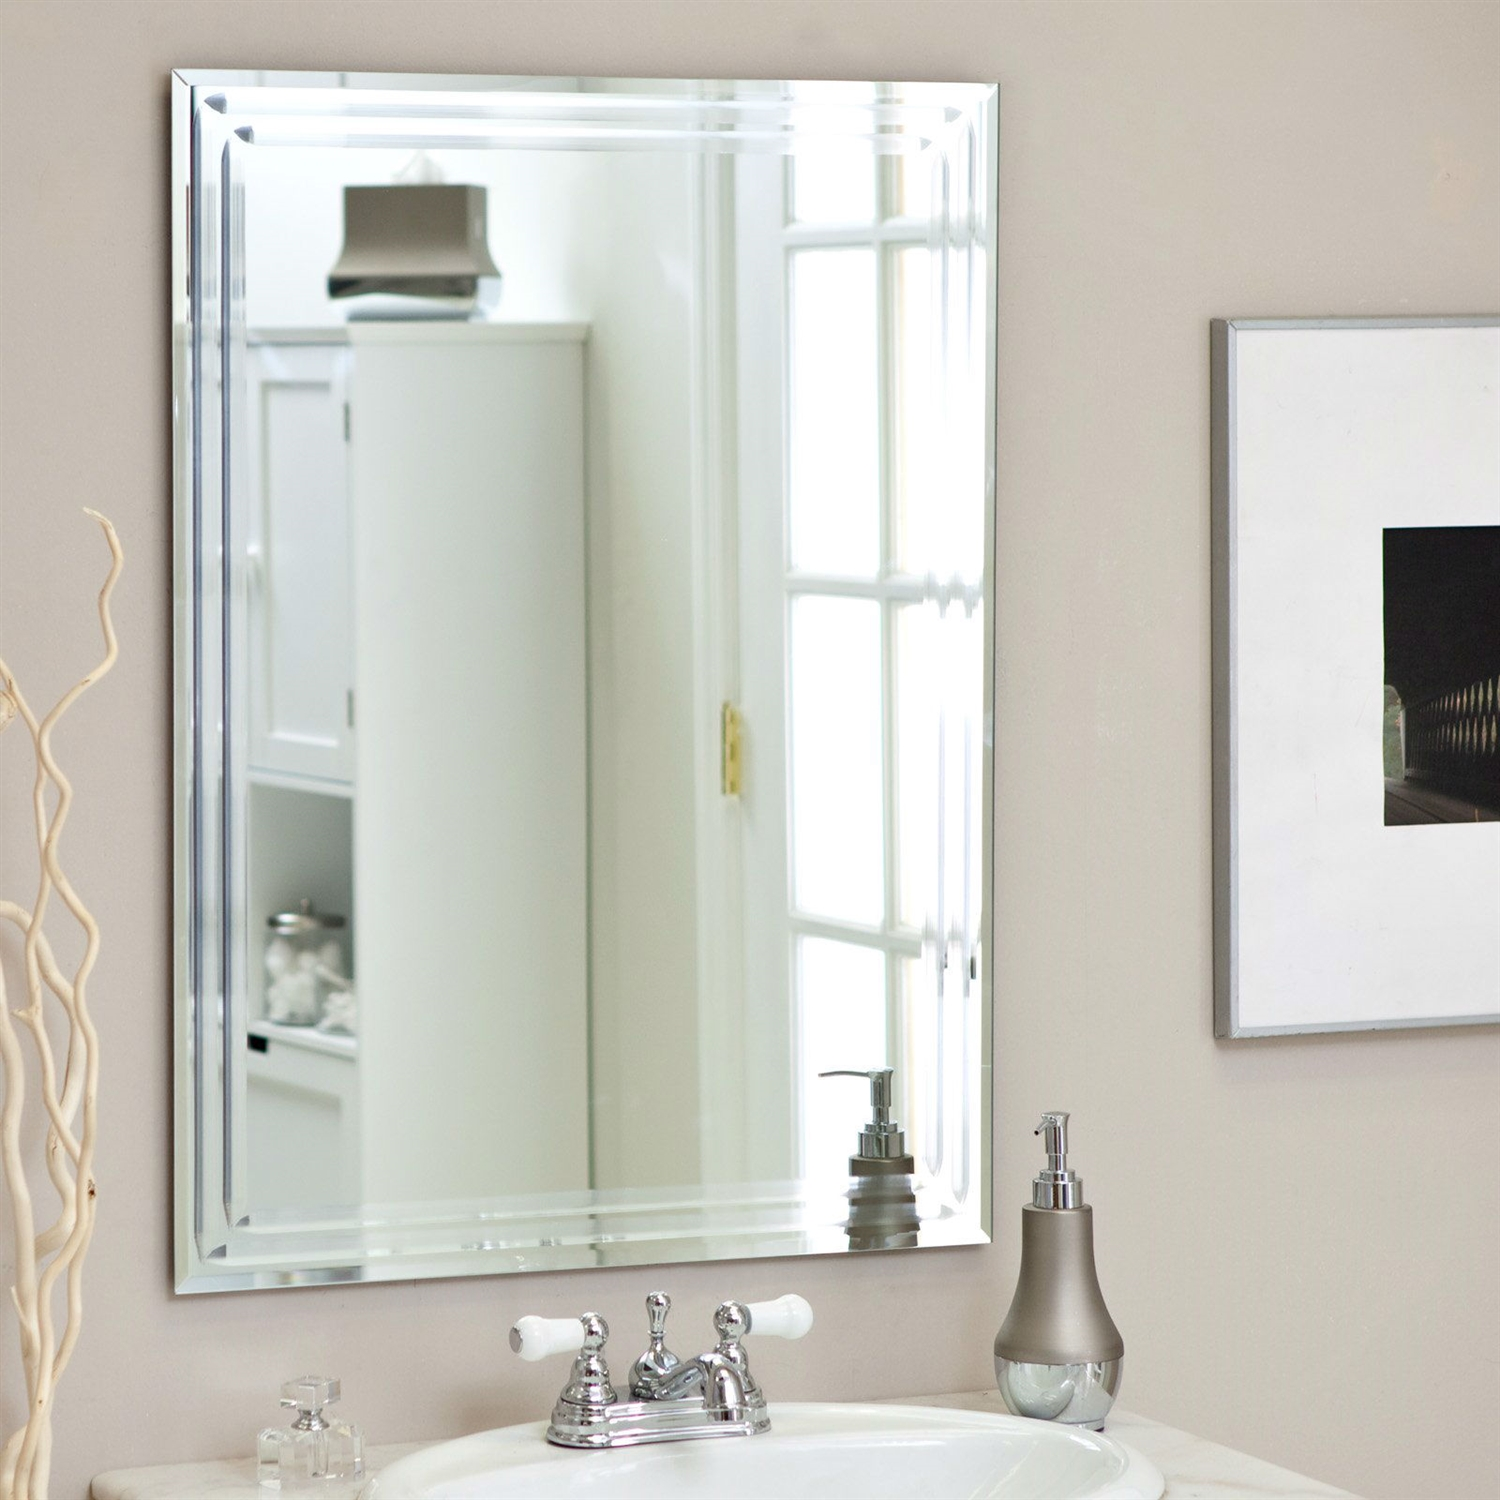 Rectangular 31.5-inch Bathroom Vanity Wall Mirror with Contemporary ...